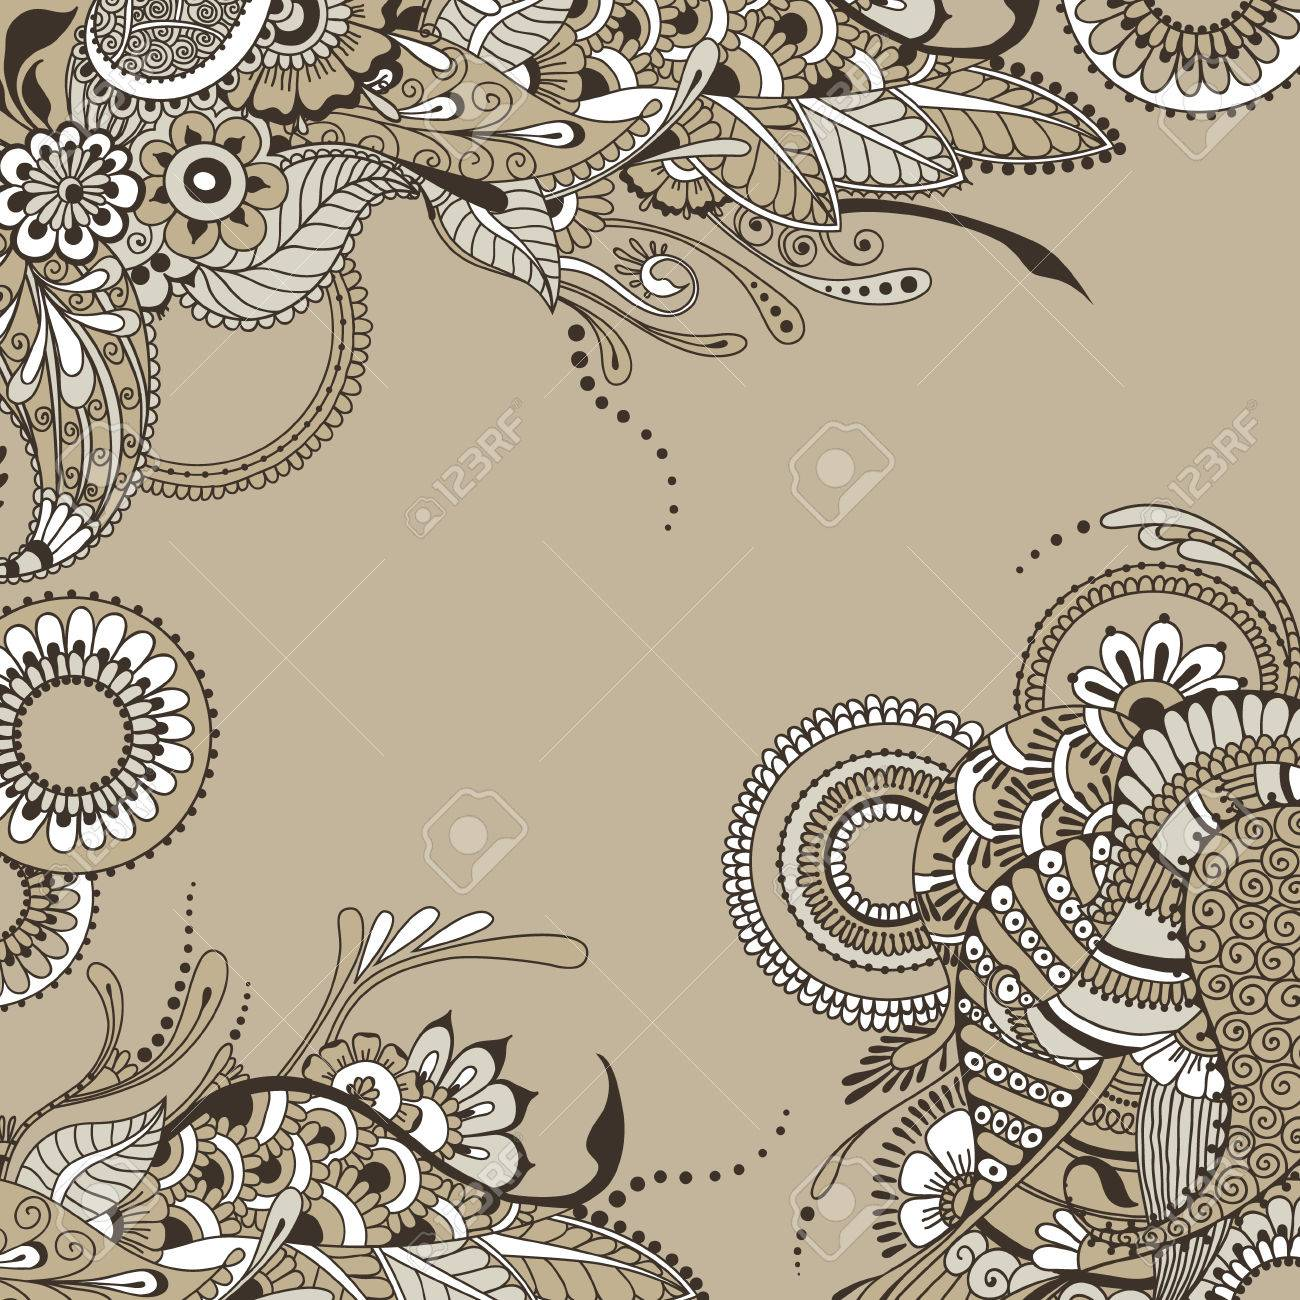 Ornate vintage vector background in mehndi style royalty free stock - Ornate Vector Card Template In Indian Mehndi Style Hand Drawn Abstract Background For Invitation